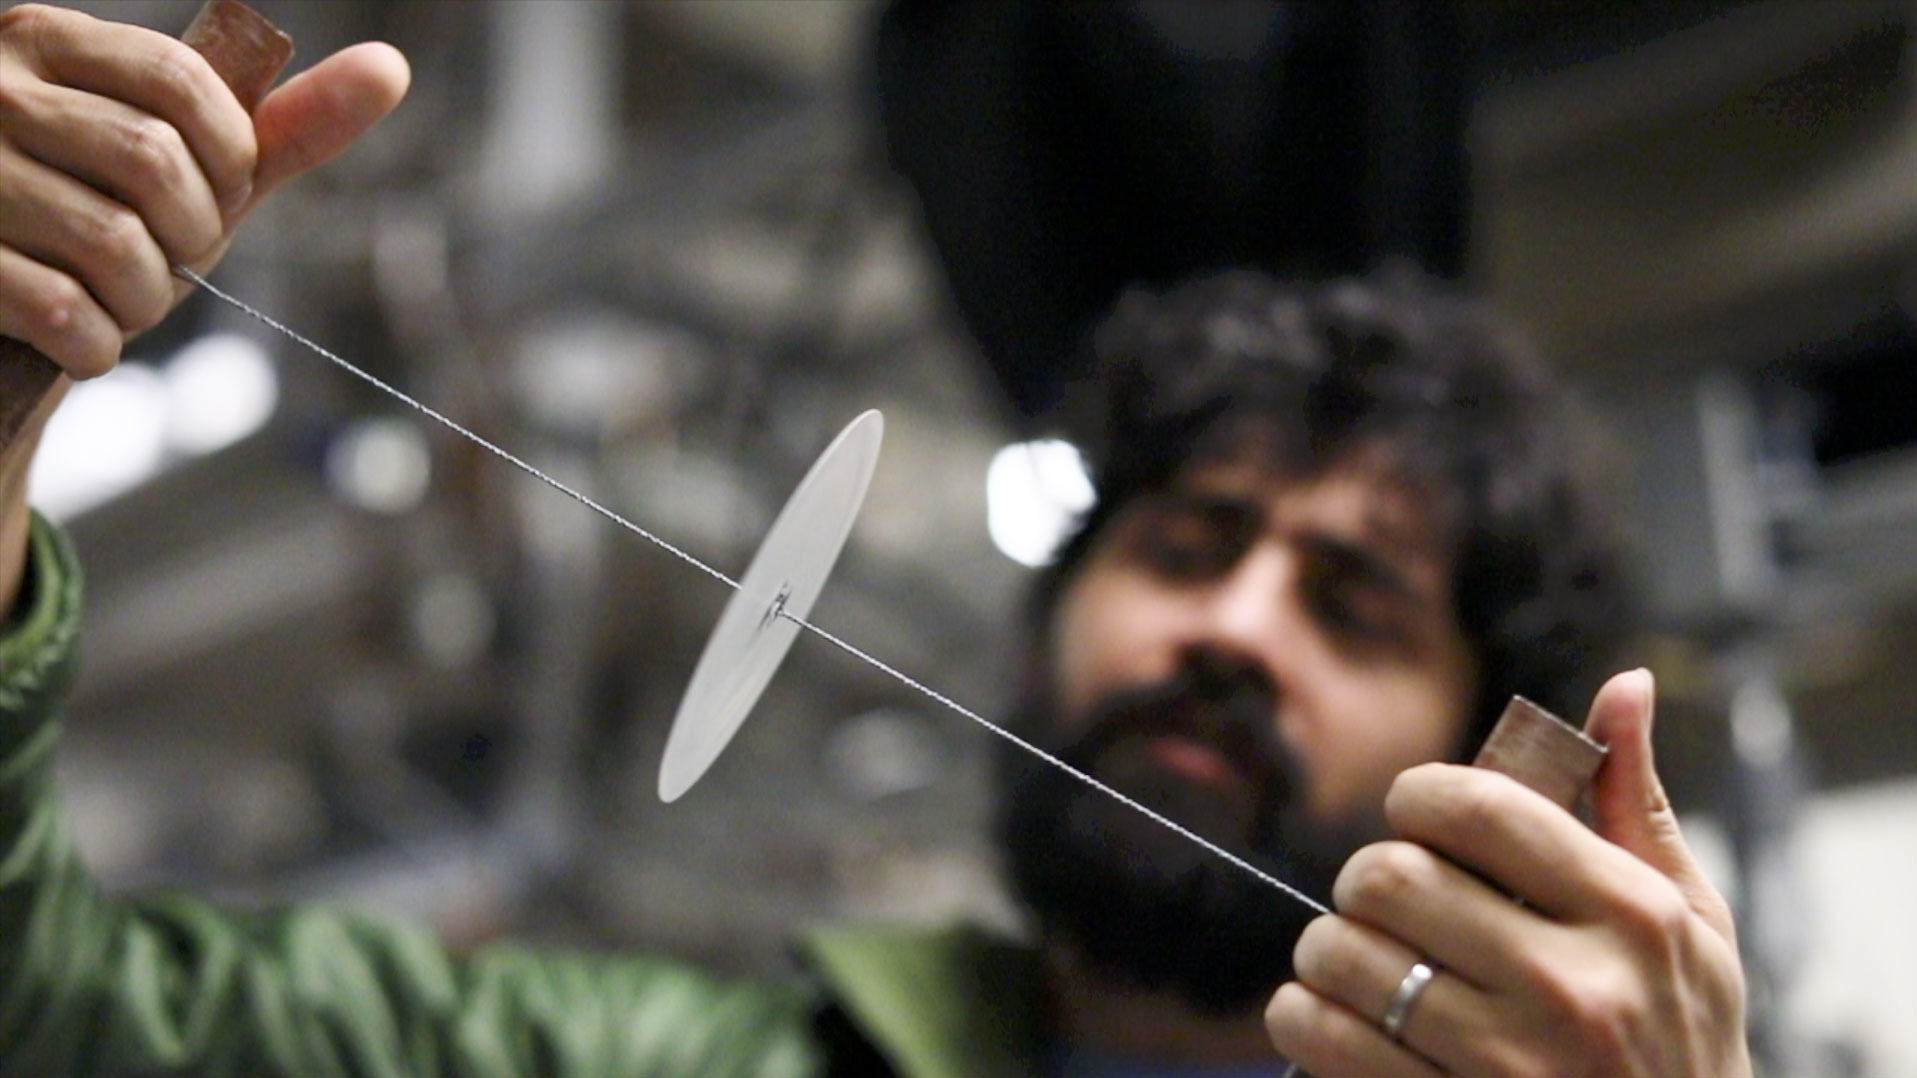 Paper centrifuge can help detect diseases in developing nations